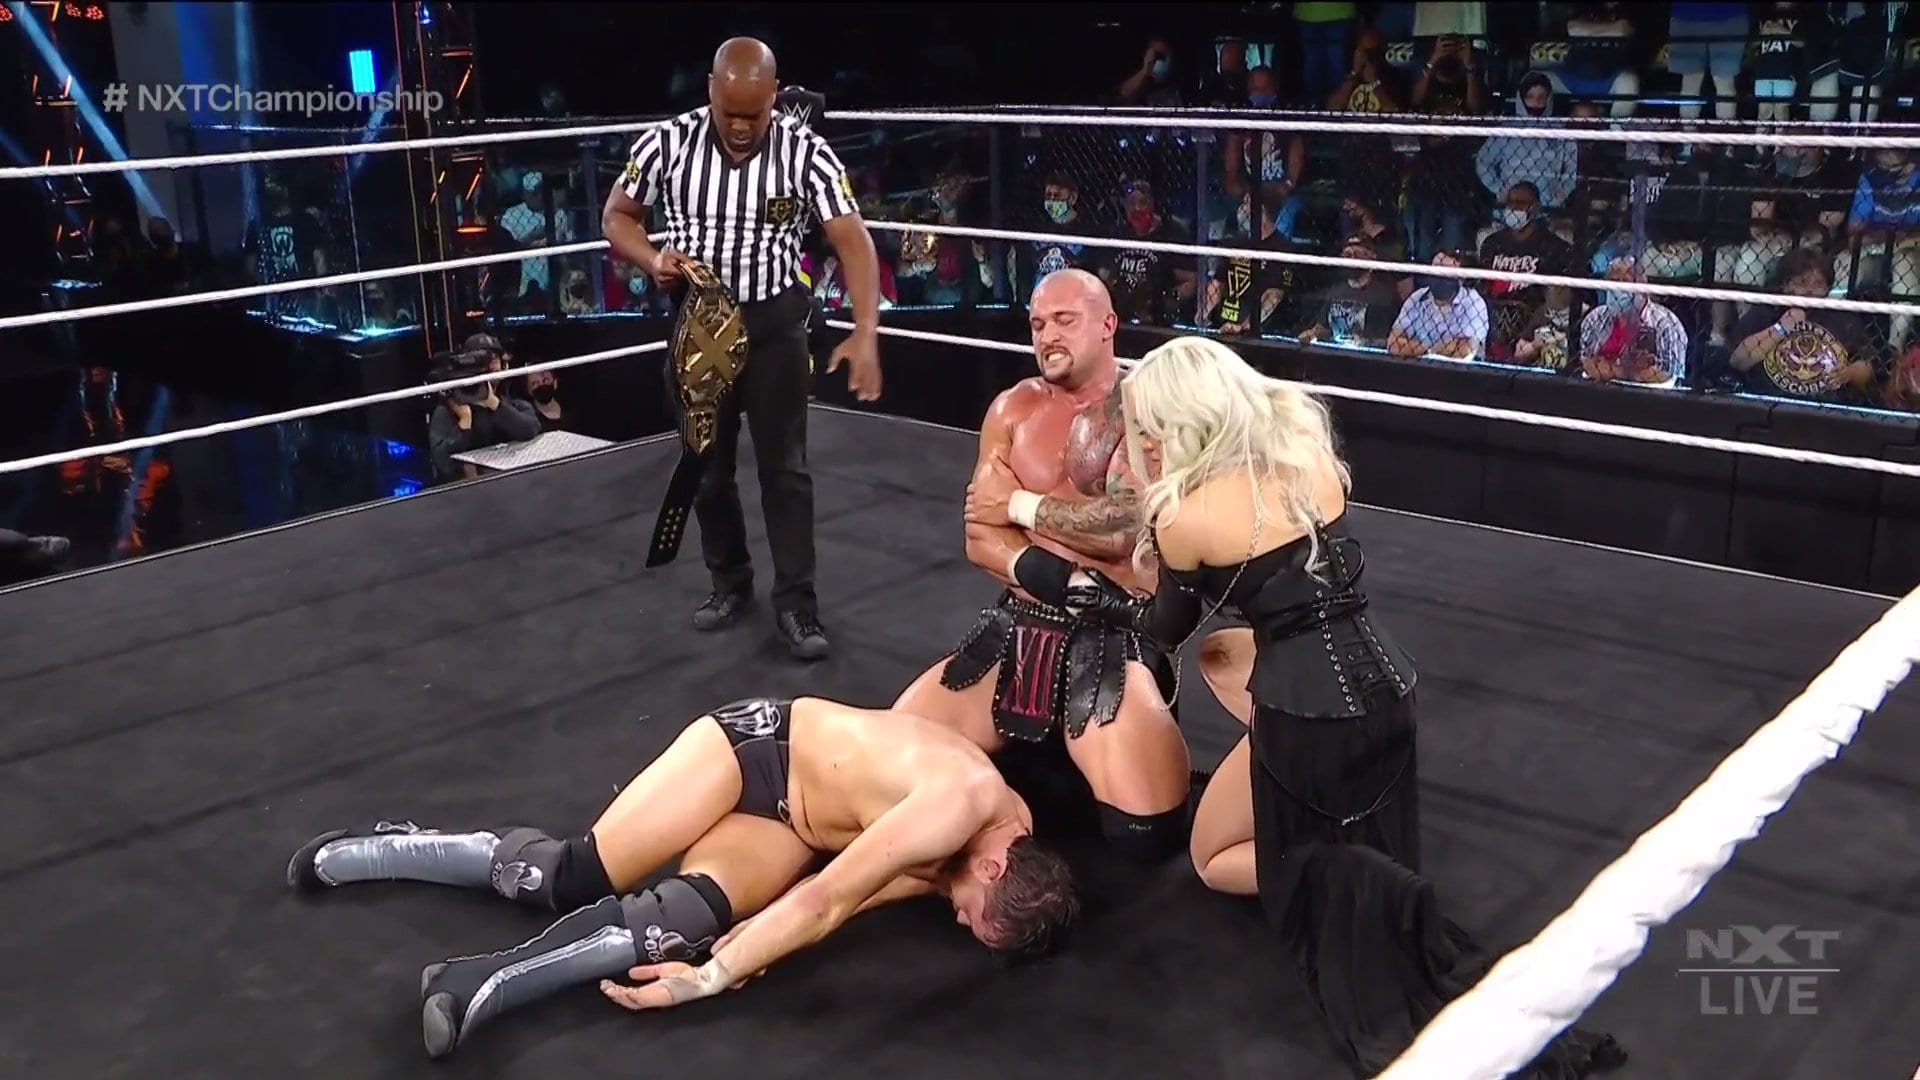 """WWE NXT """"Takeover: In Your House"""" Results – Fatal 5 Way Main Event, Winners Take All, More"""